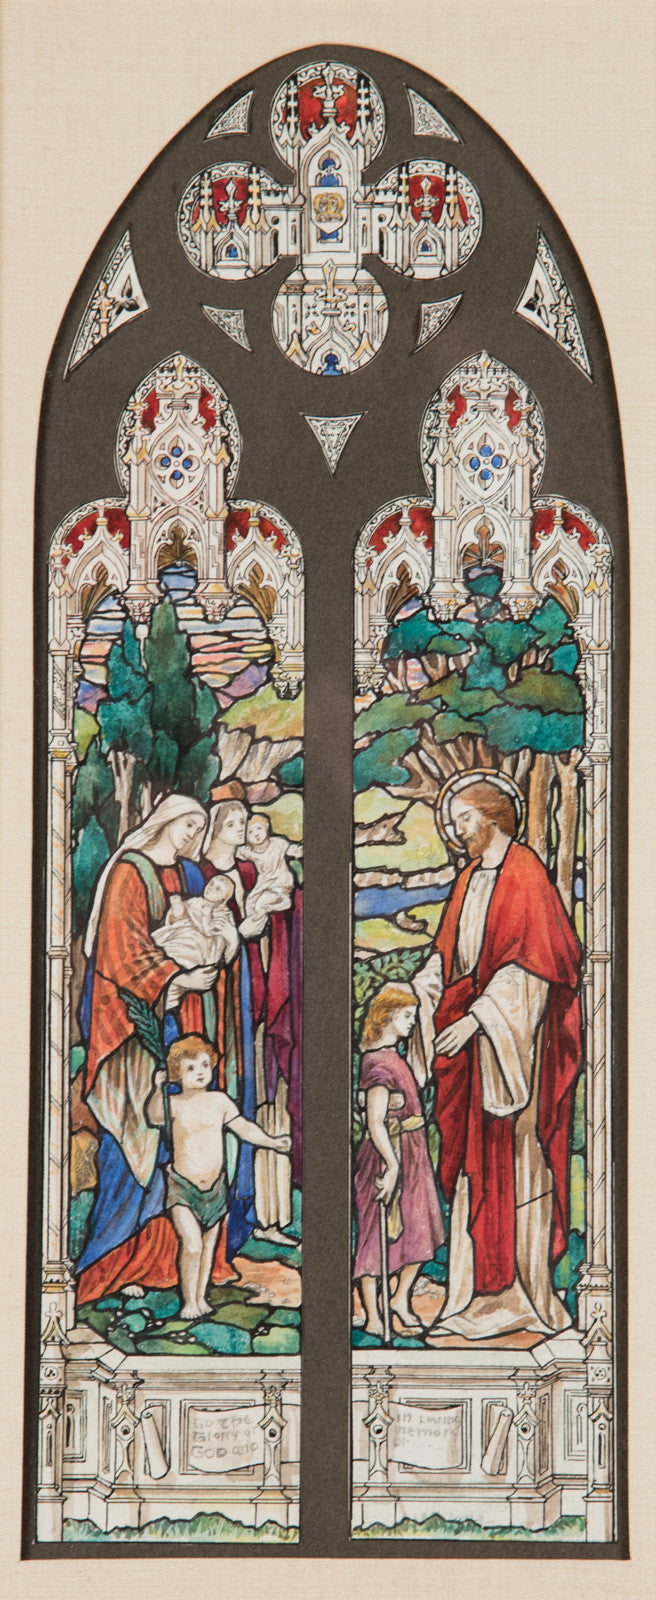 Christ Blessing the Children by William Camm